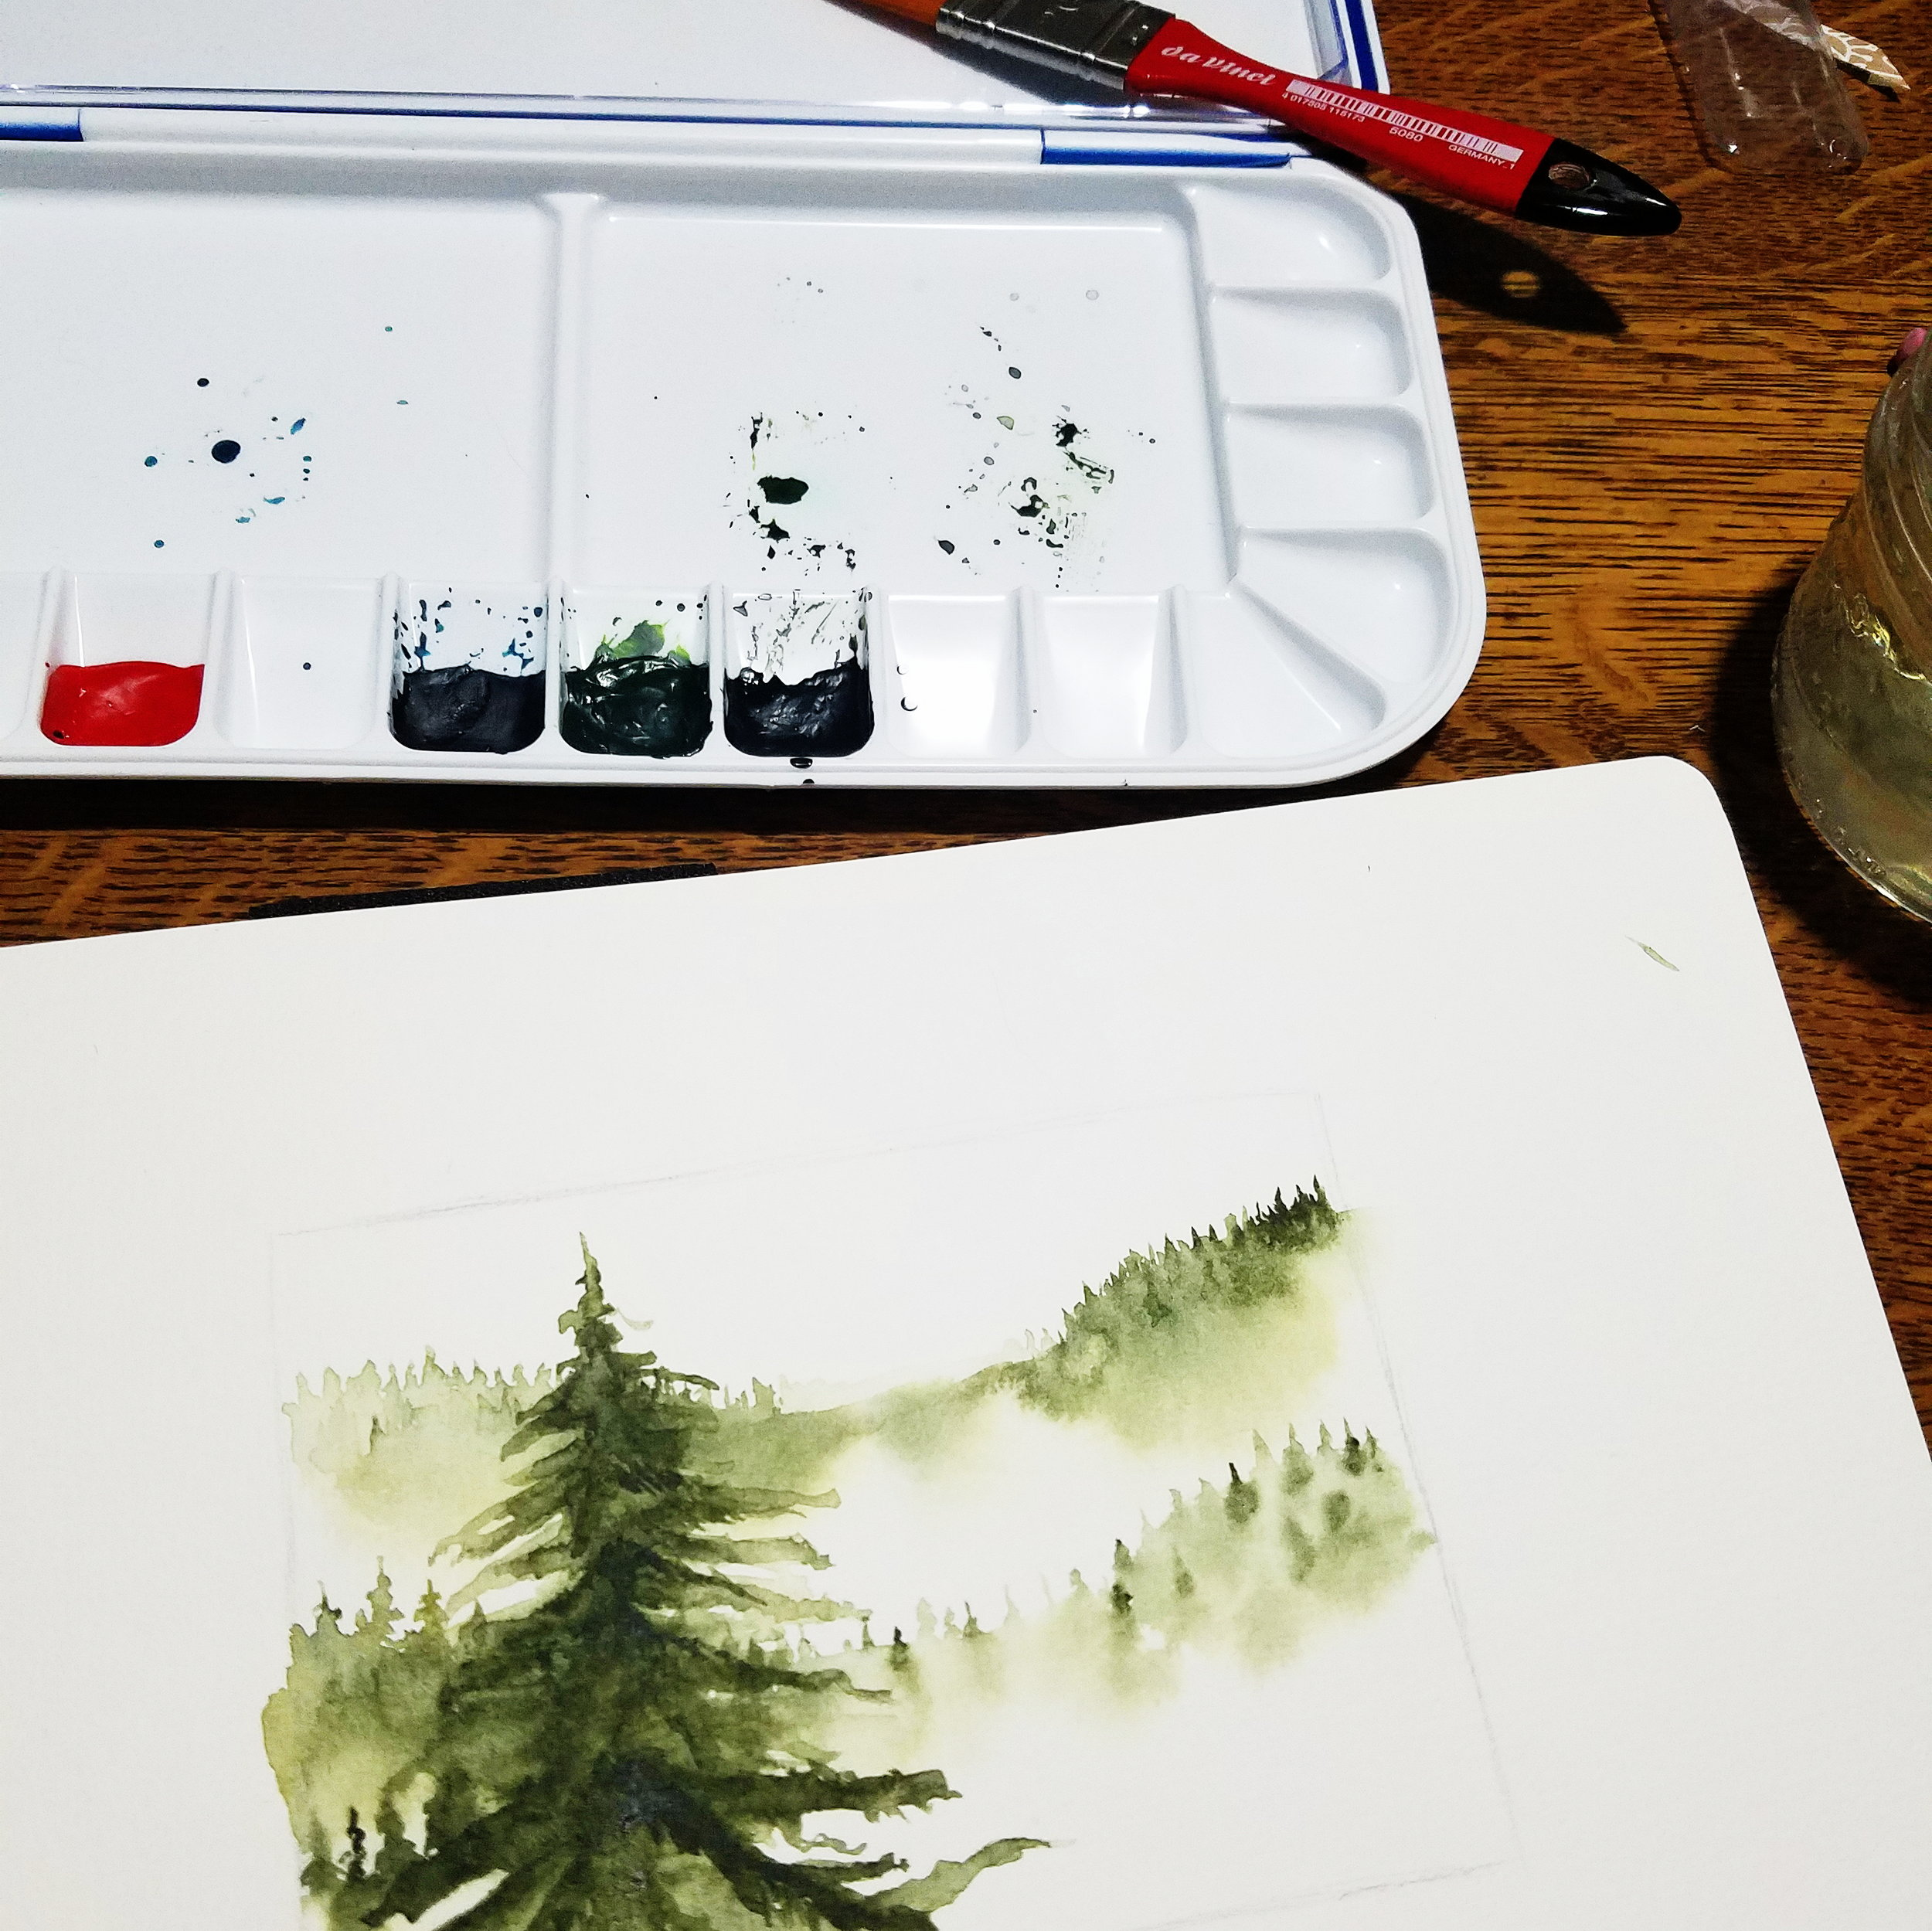 Finally playing with watercolor after Salt Creek earlier in the month!